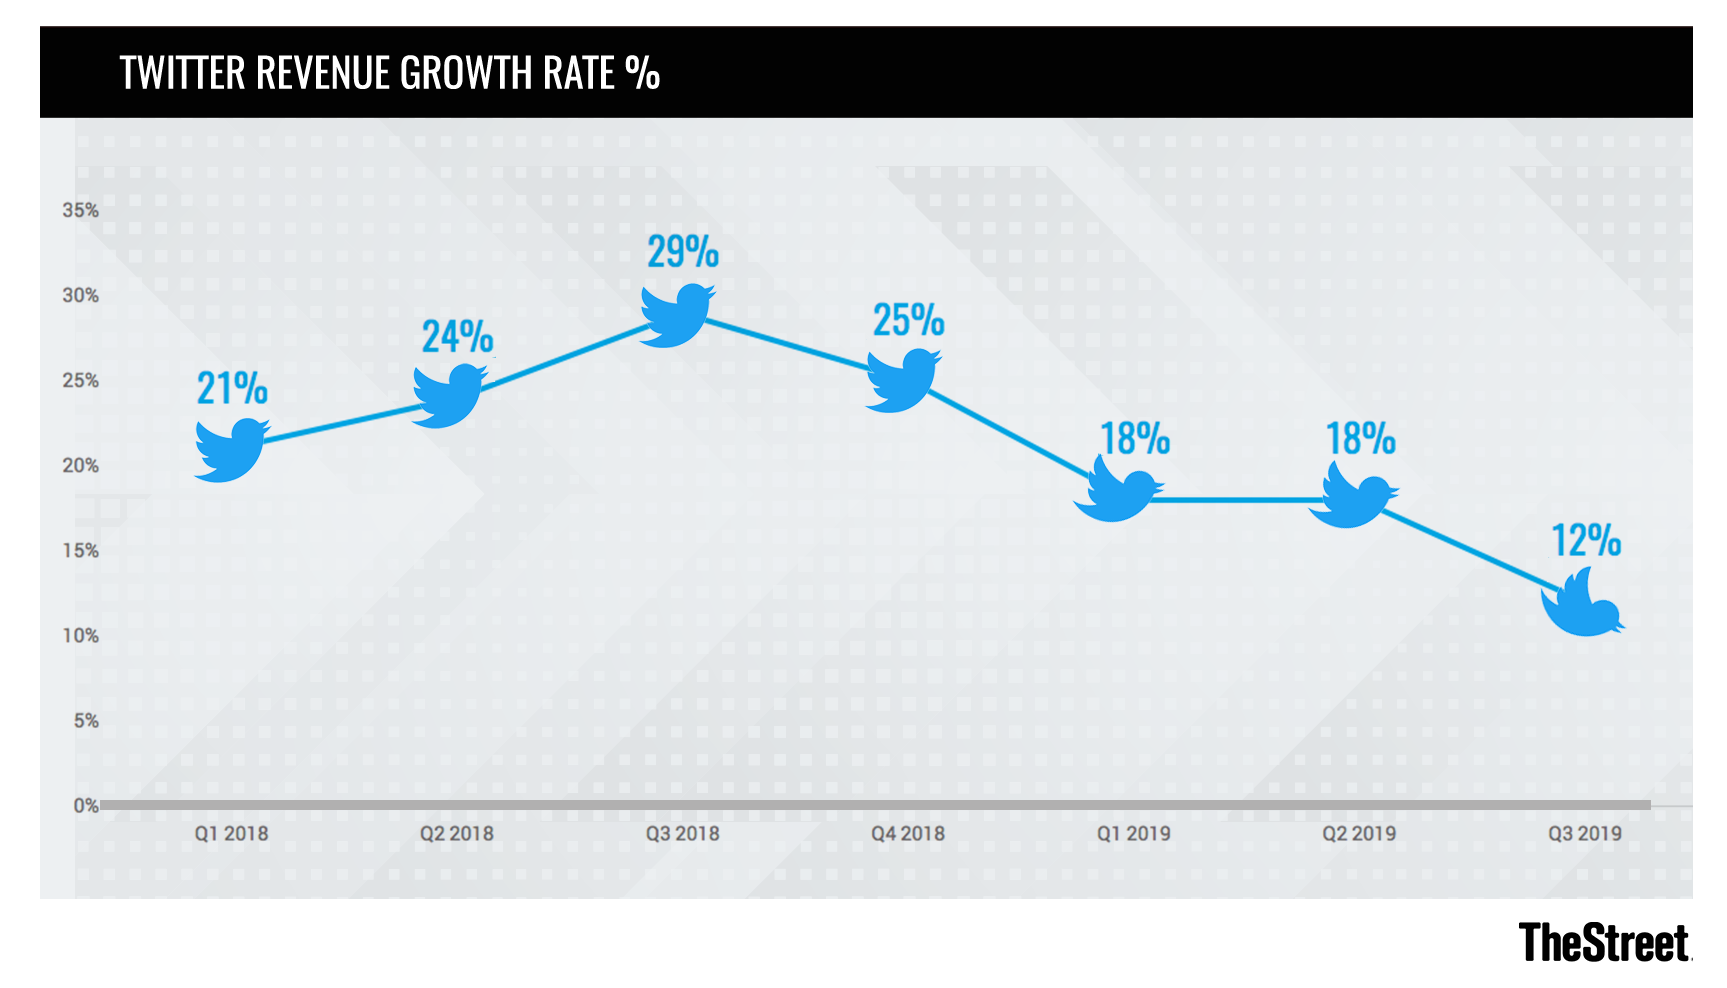 364d72be Twitter's top-line has been growing steadily above 15% for some time. Thus,  its guided Q3 2019 revenue growth rate of 12% could be seen as a disturbing  ...